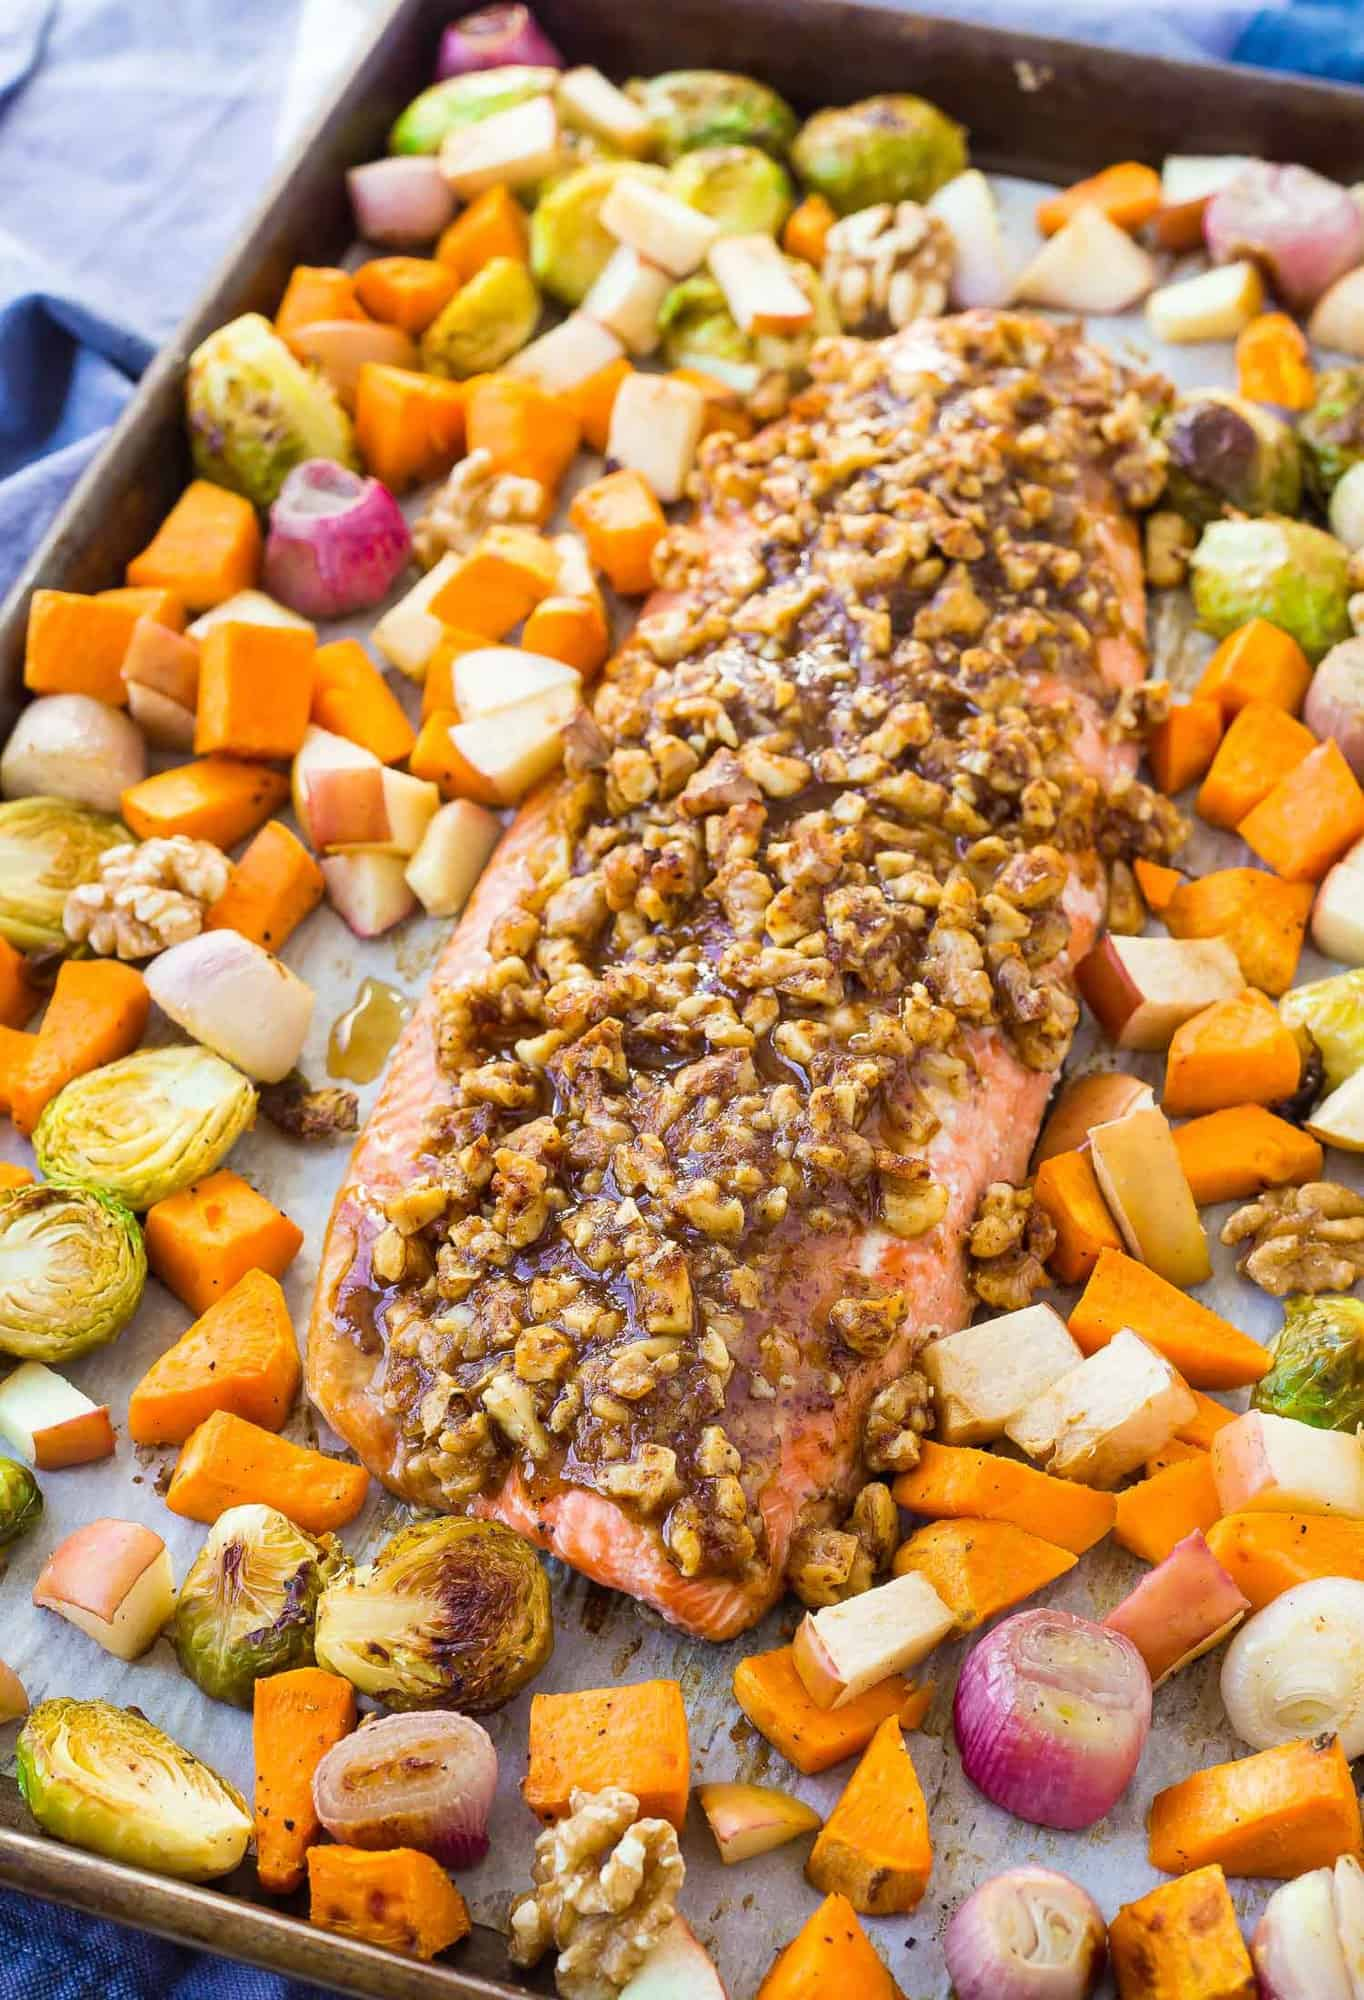 Salmon topped with walnuts and surrounded with colorful vegetables.